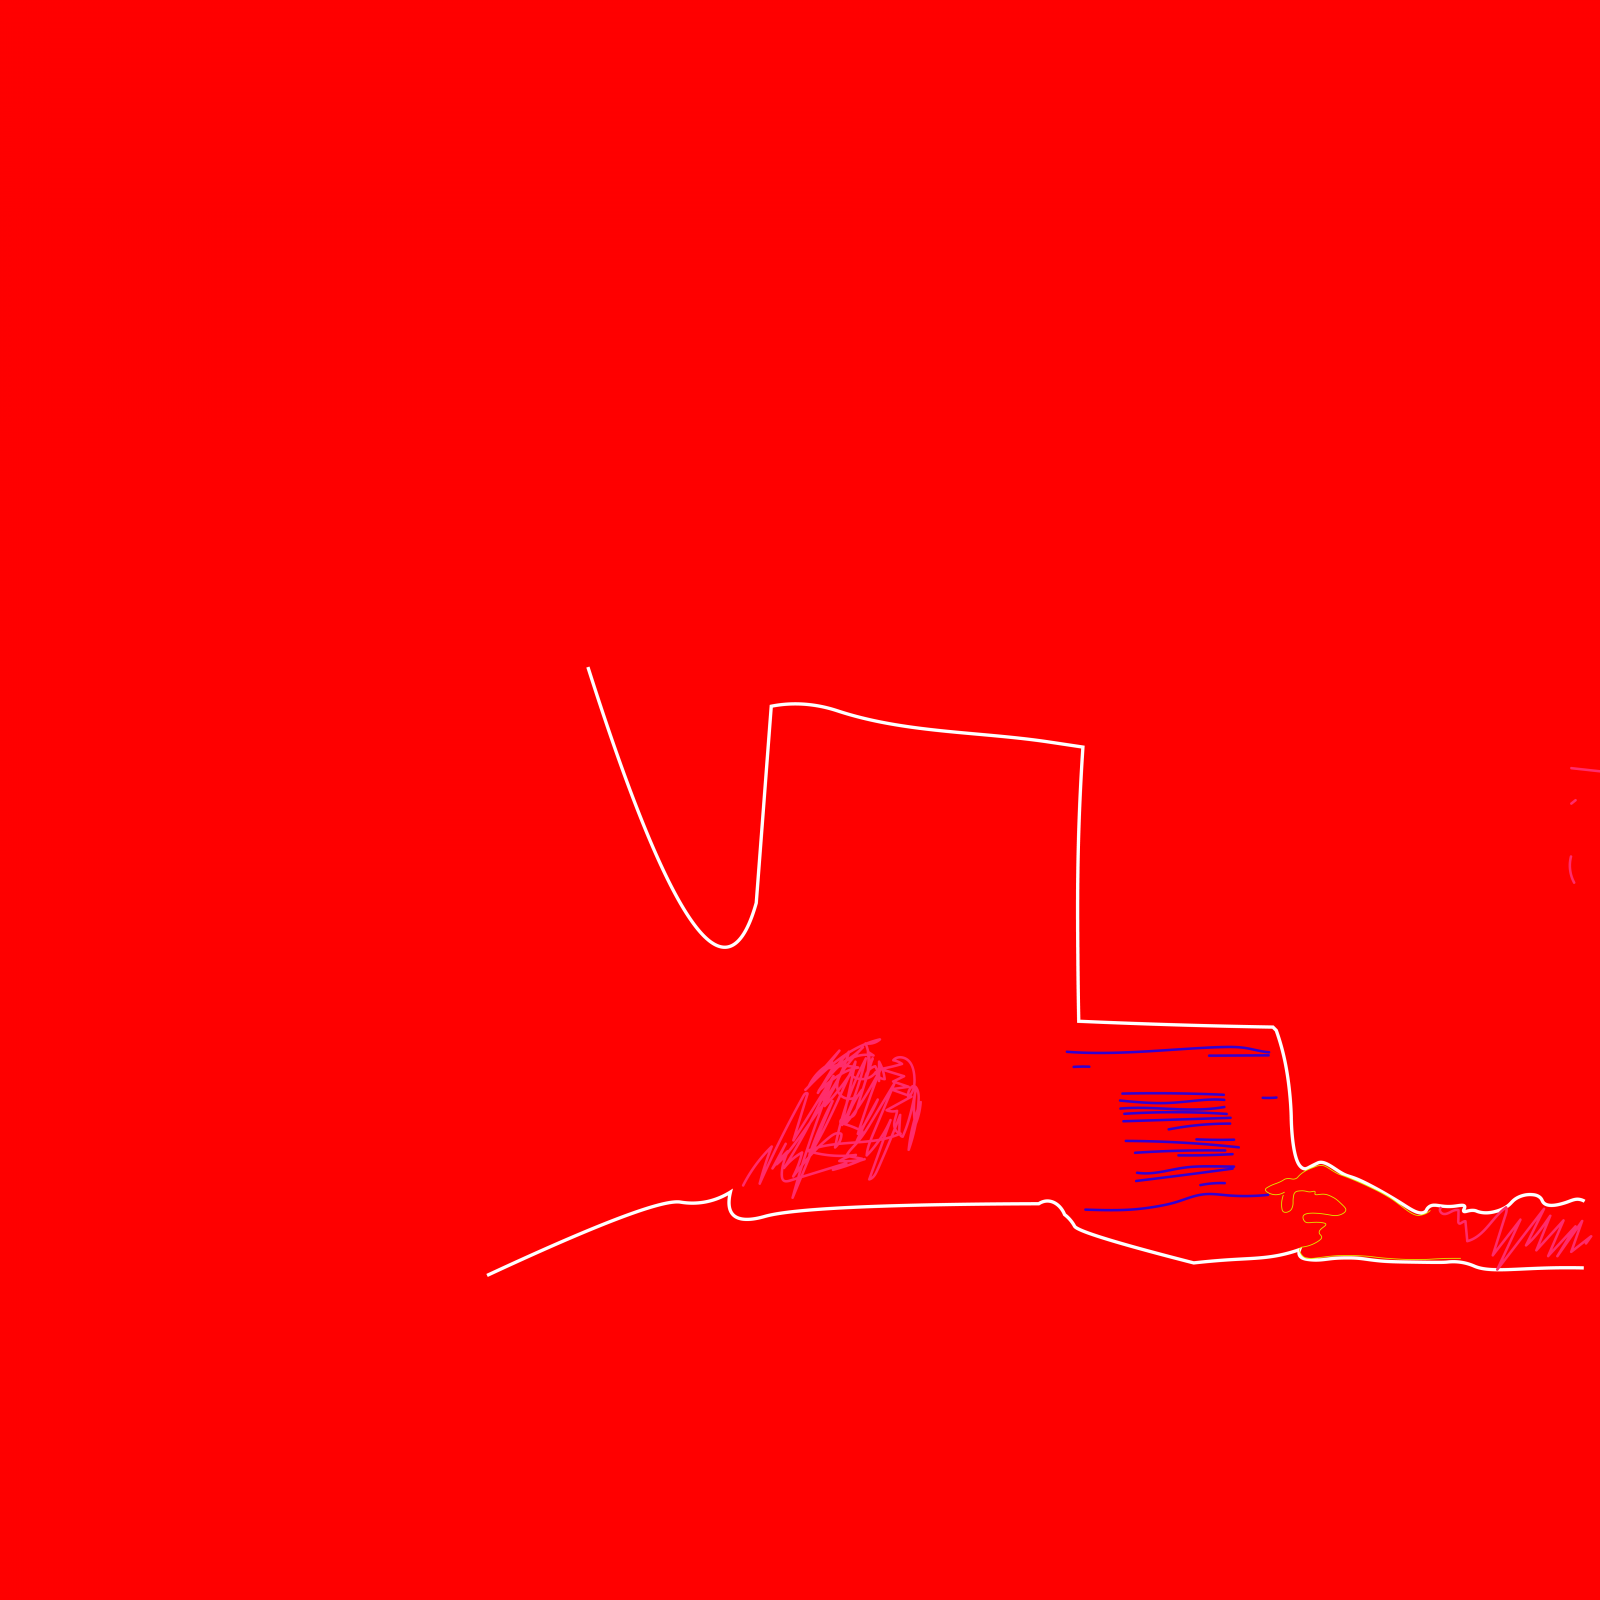 A red background with white line drawings.